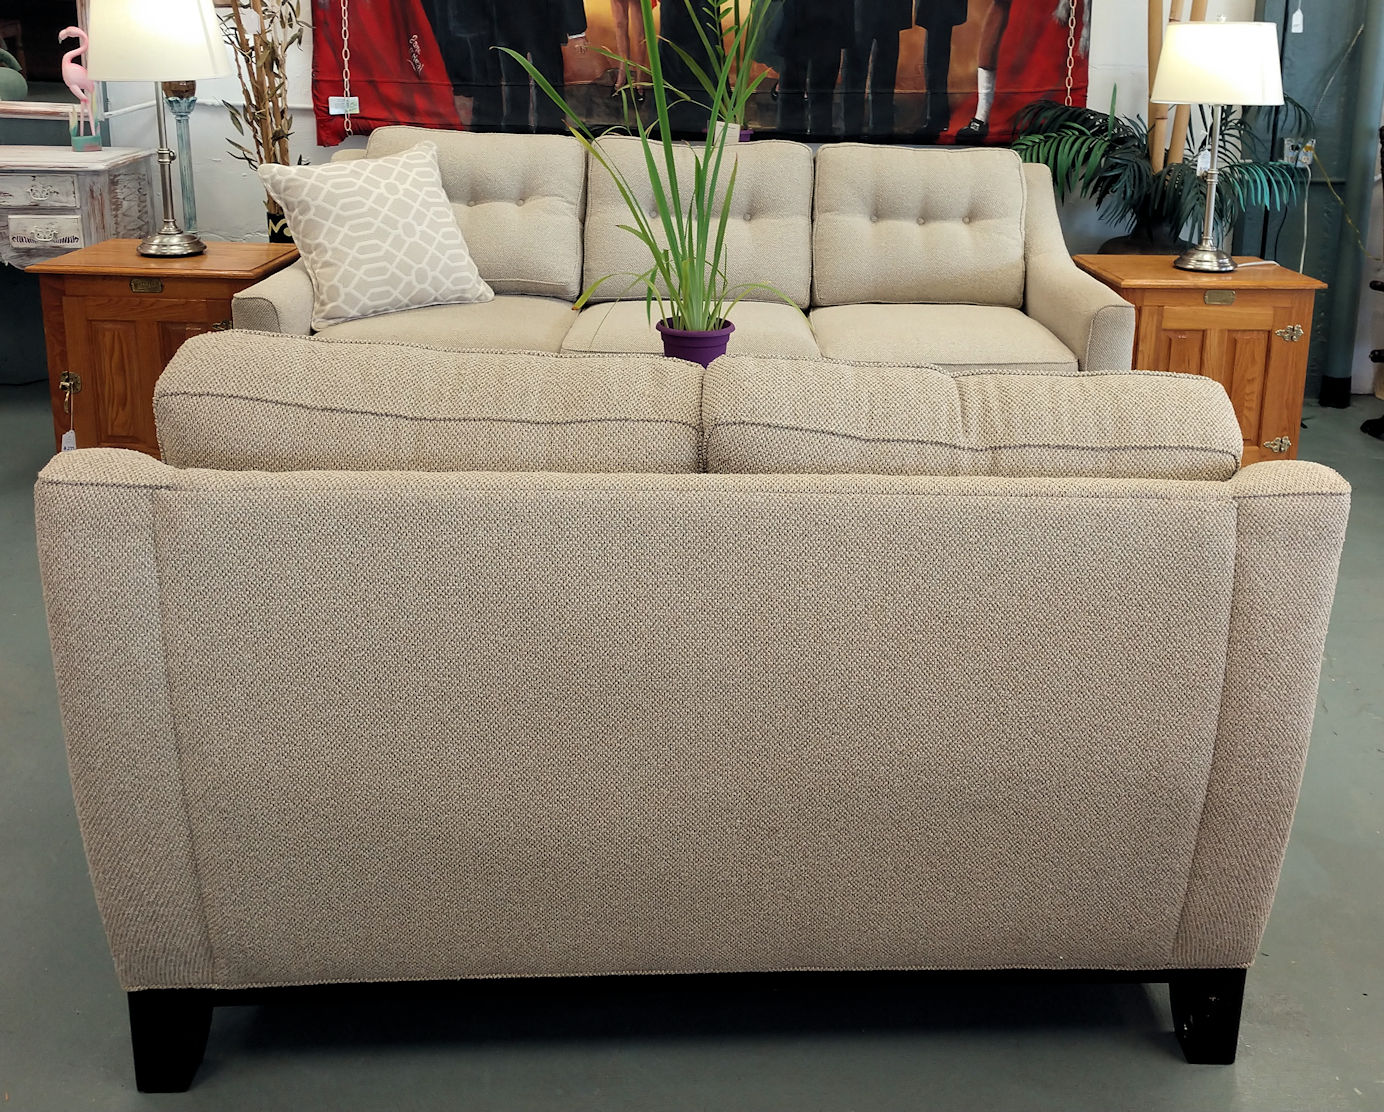 LR0263-Sofa-Loveseat-Cindy-Crawford